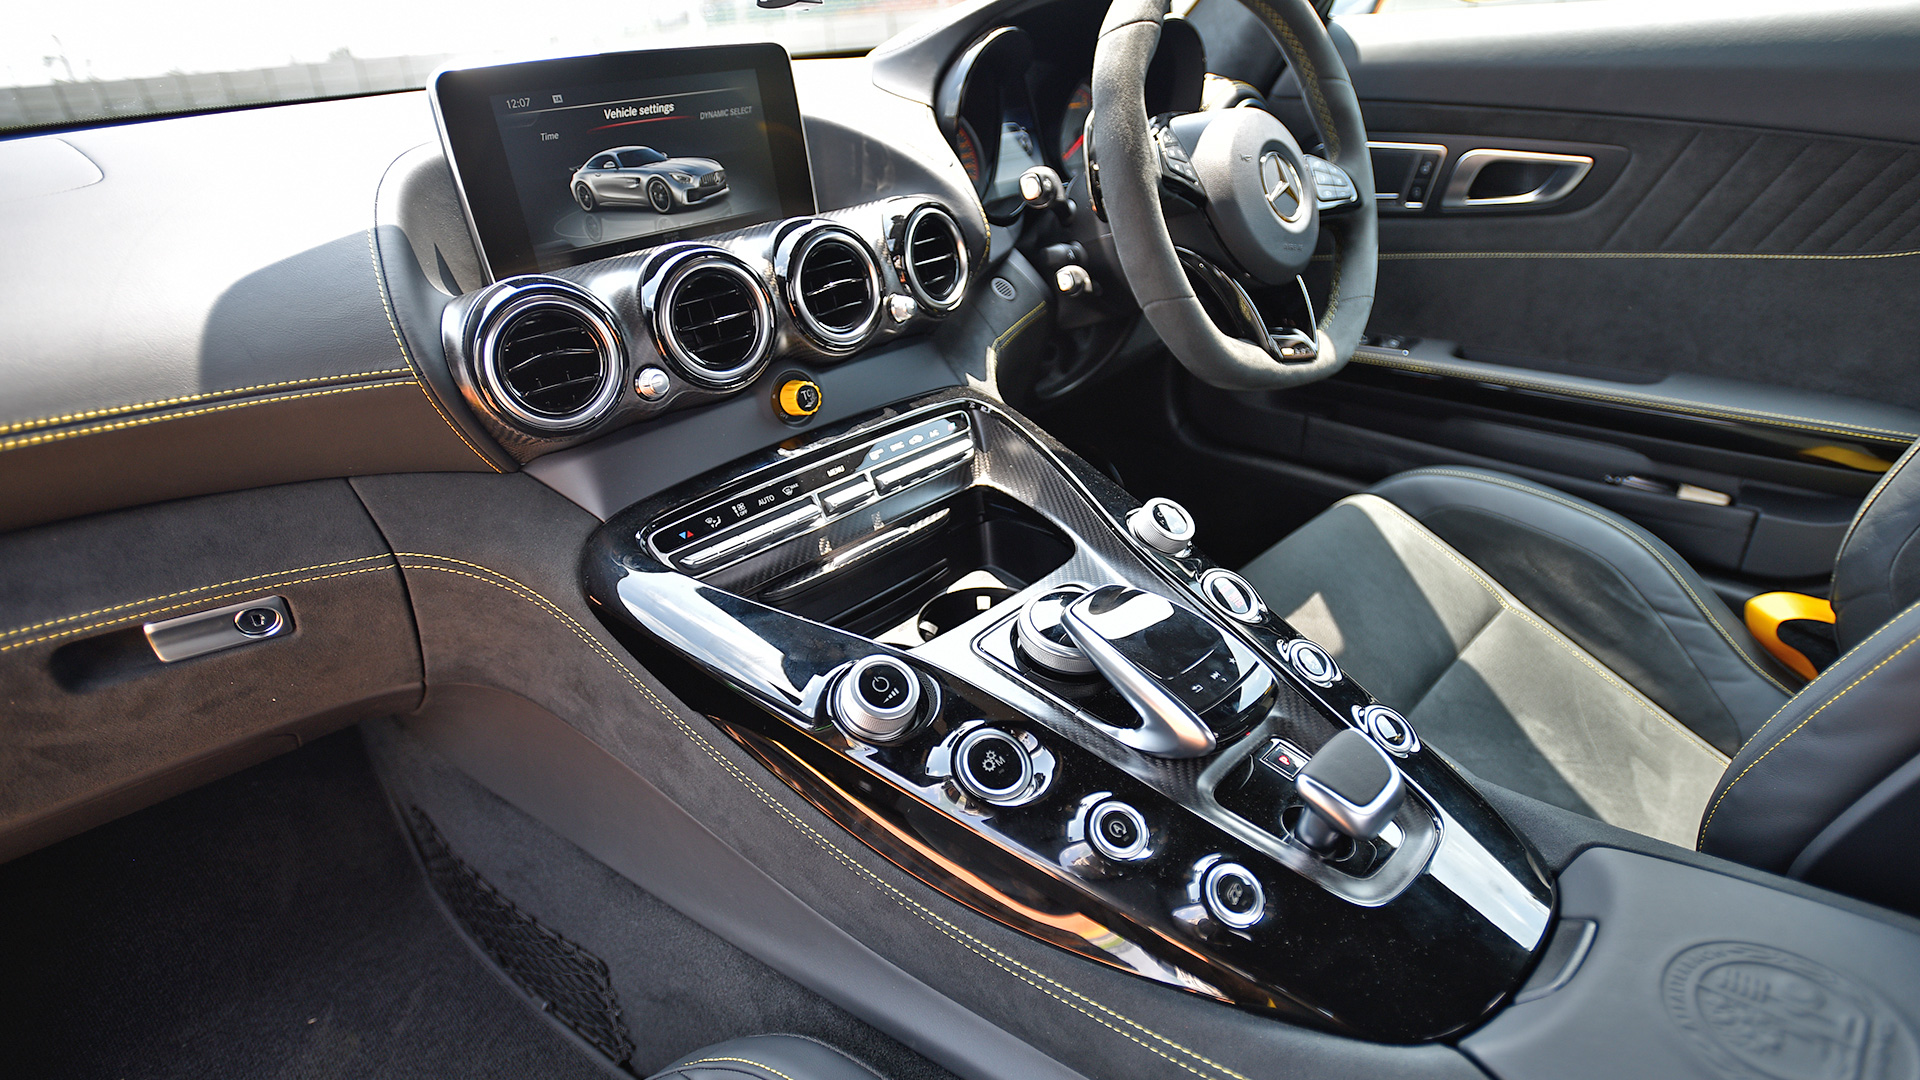 Mercedes Benz AMG GT 2017 R Interior Car Photos - Overdrive